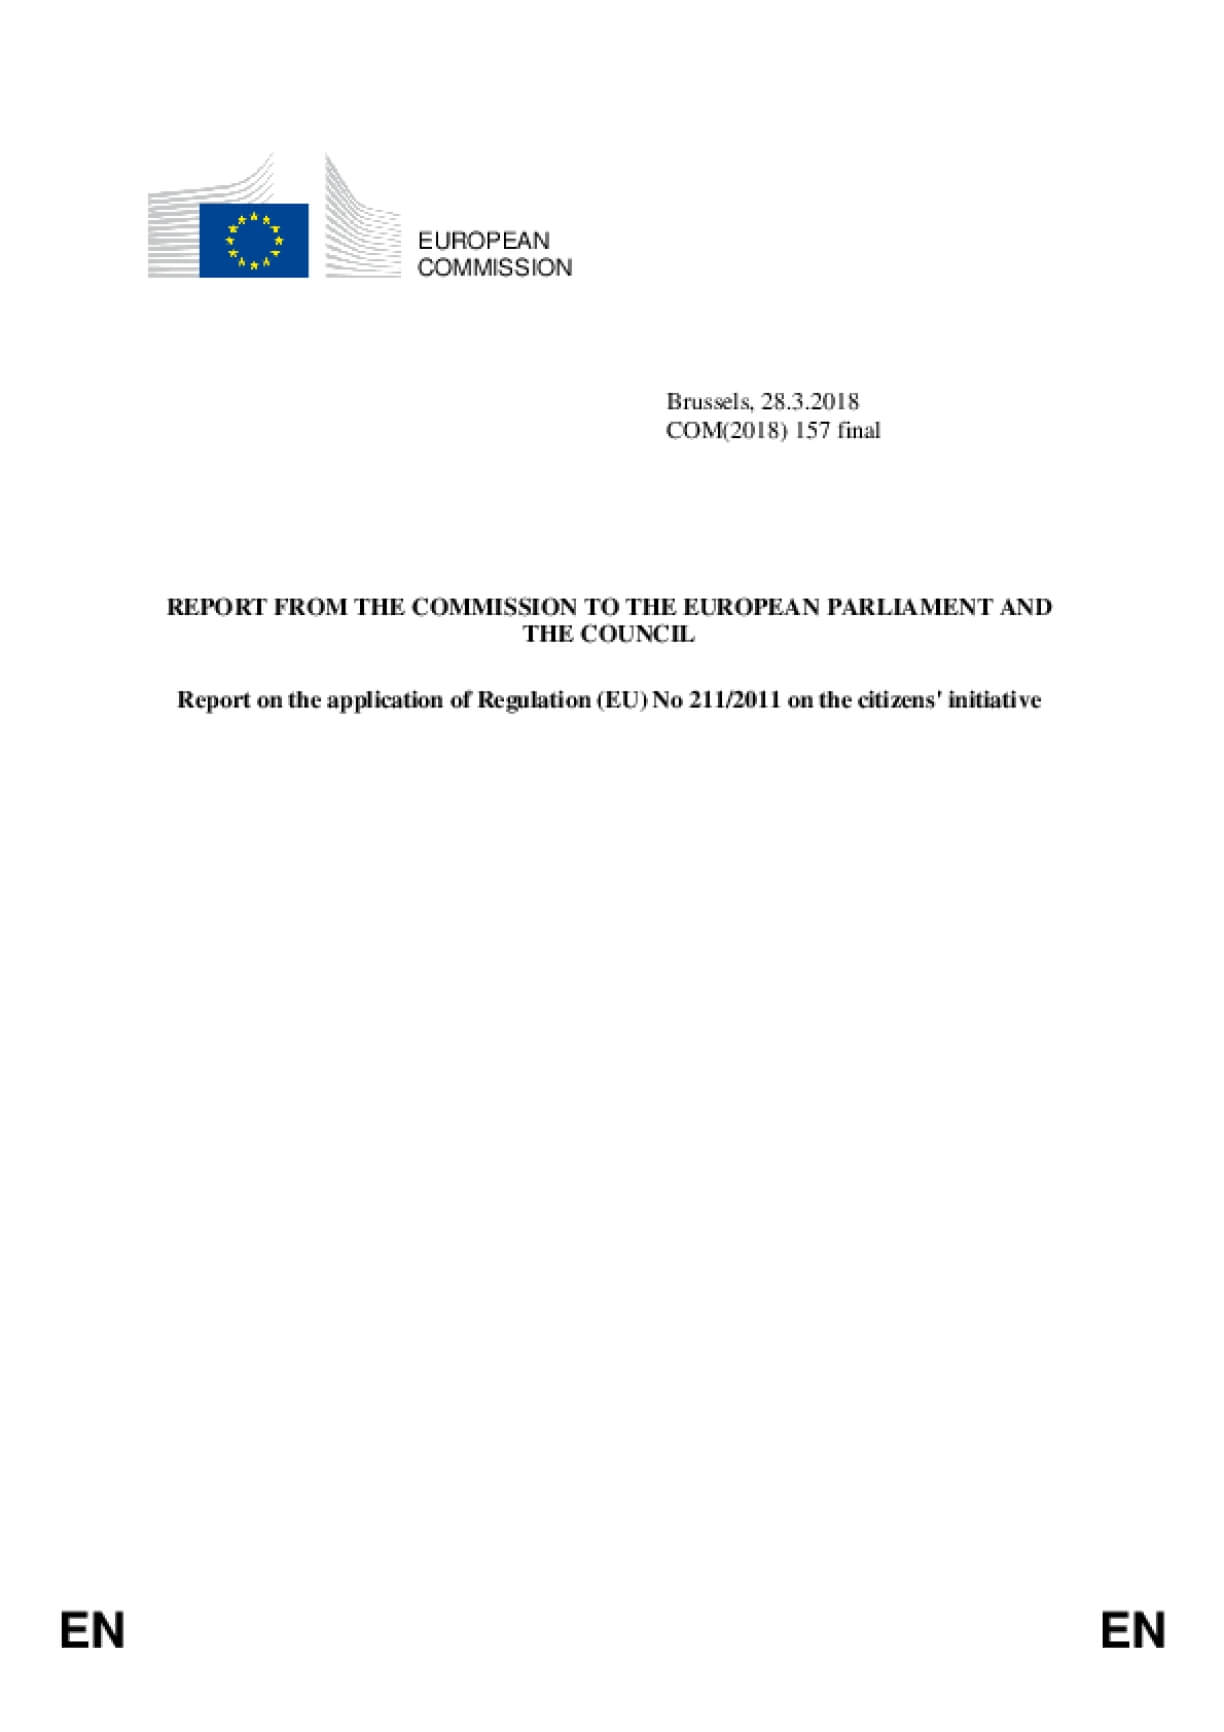 Report on the application of Regulation (EU) No 211/2011 on the citizens' initiative 2018